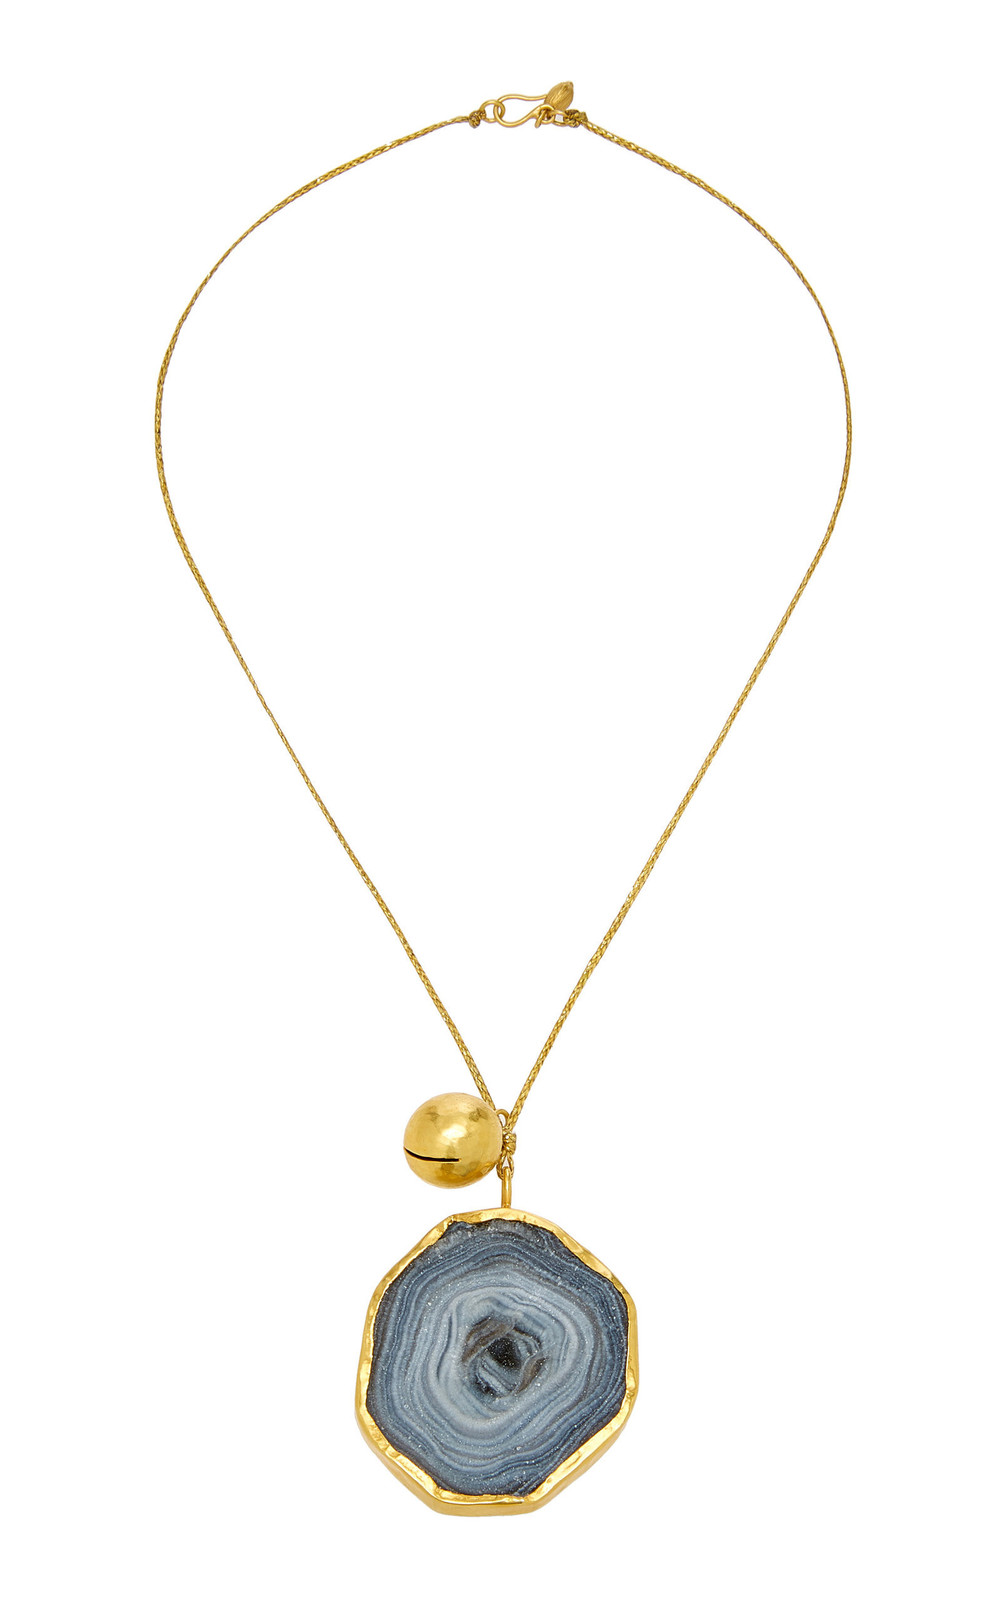 Pippa Small Large Colette Set Desert Druzy Pendant With Gold Bell On Cord in grey